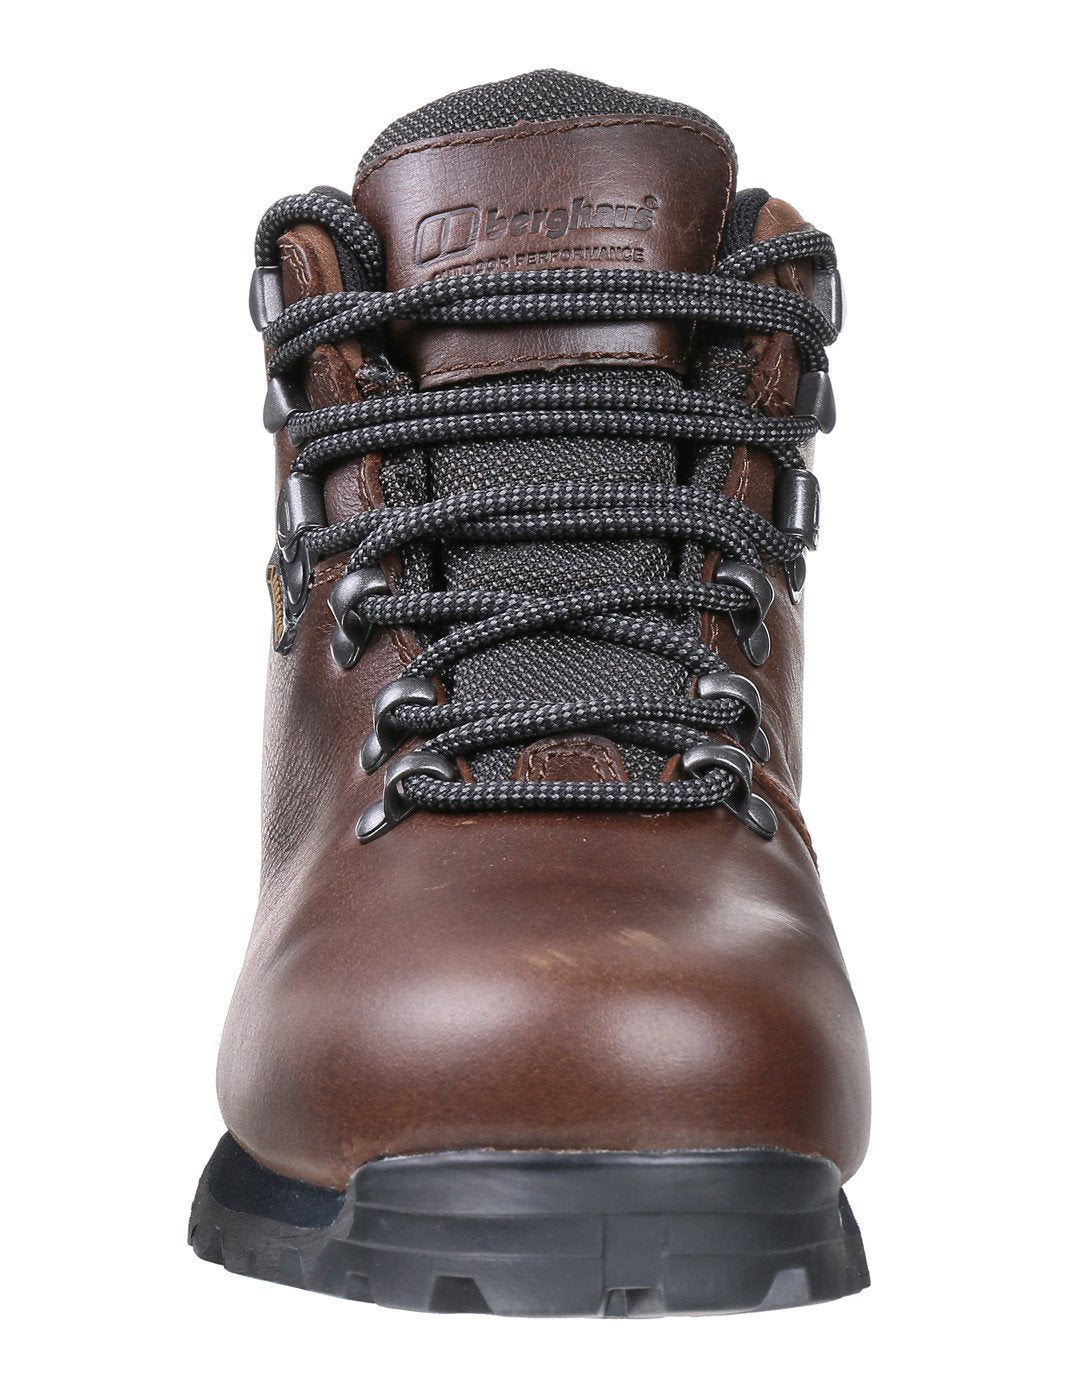 ff0ab72f16e Womens Hillwalker II GTX Walking Boot - Chocolate Brown